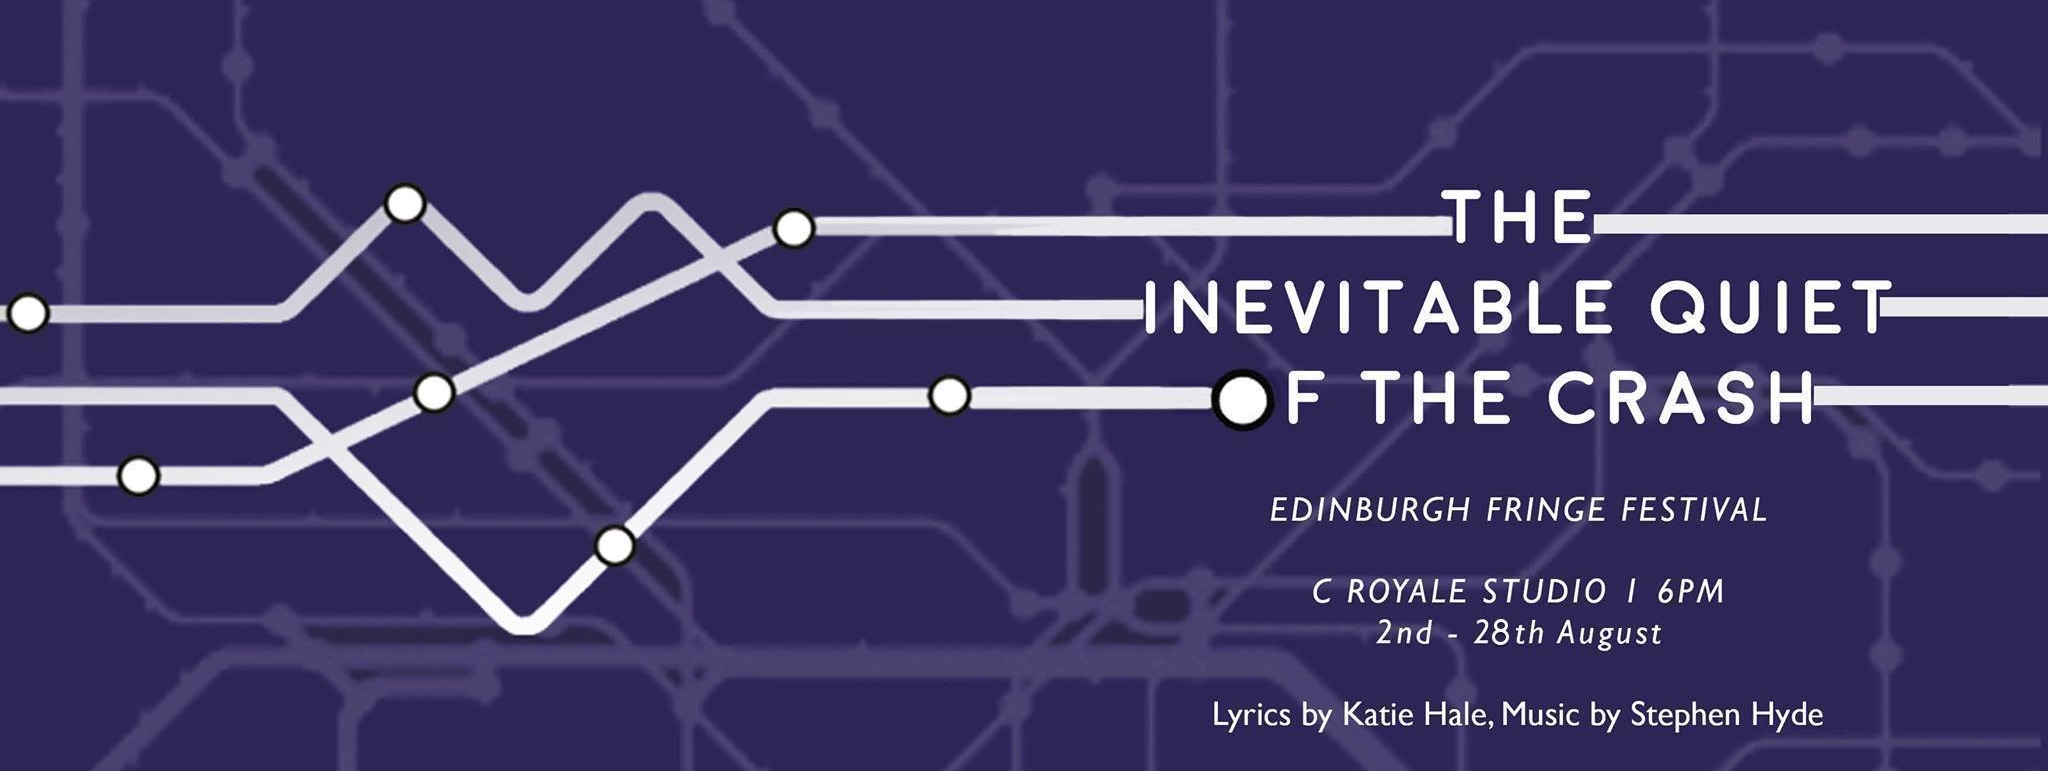 The Inevitable Quiet of the Crash - a new musical at Edinburgh Fringe 2017, lyrics by Katie Hale & music by Stephen Hyde